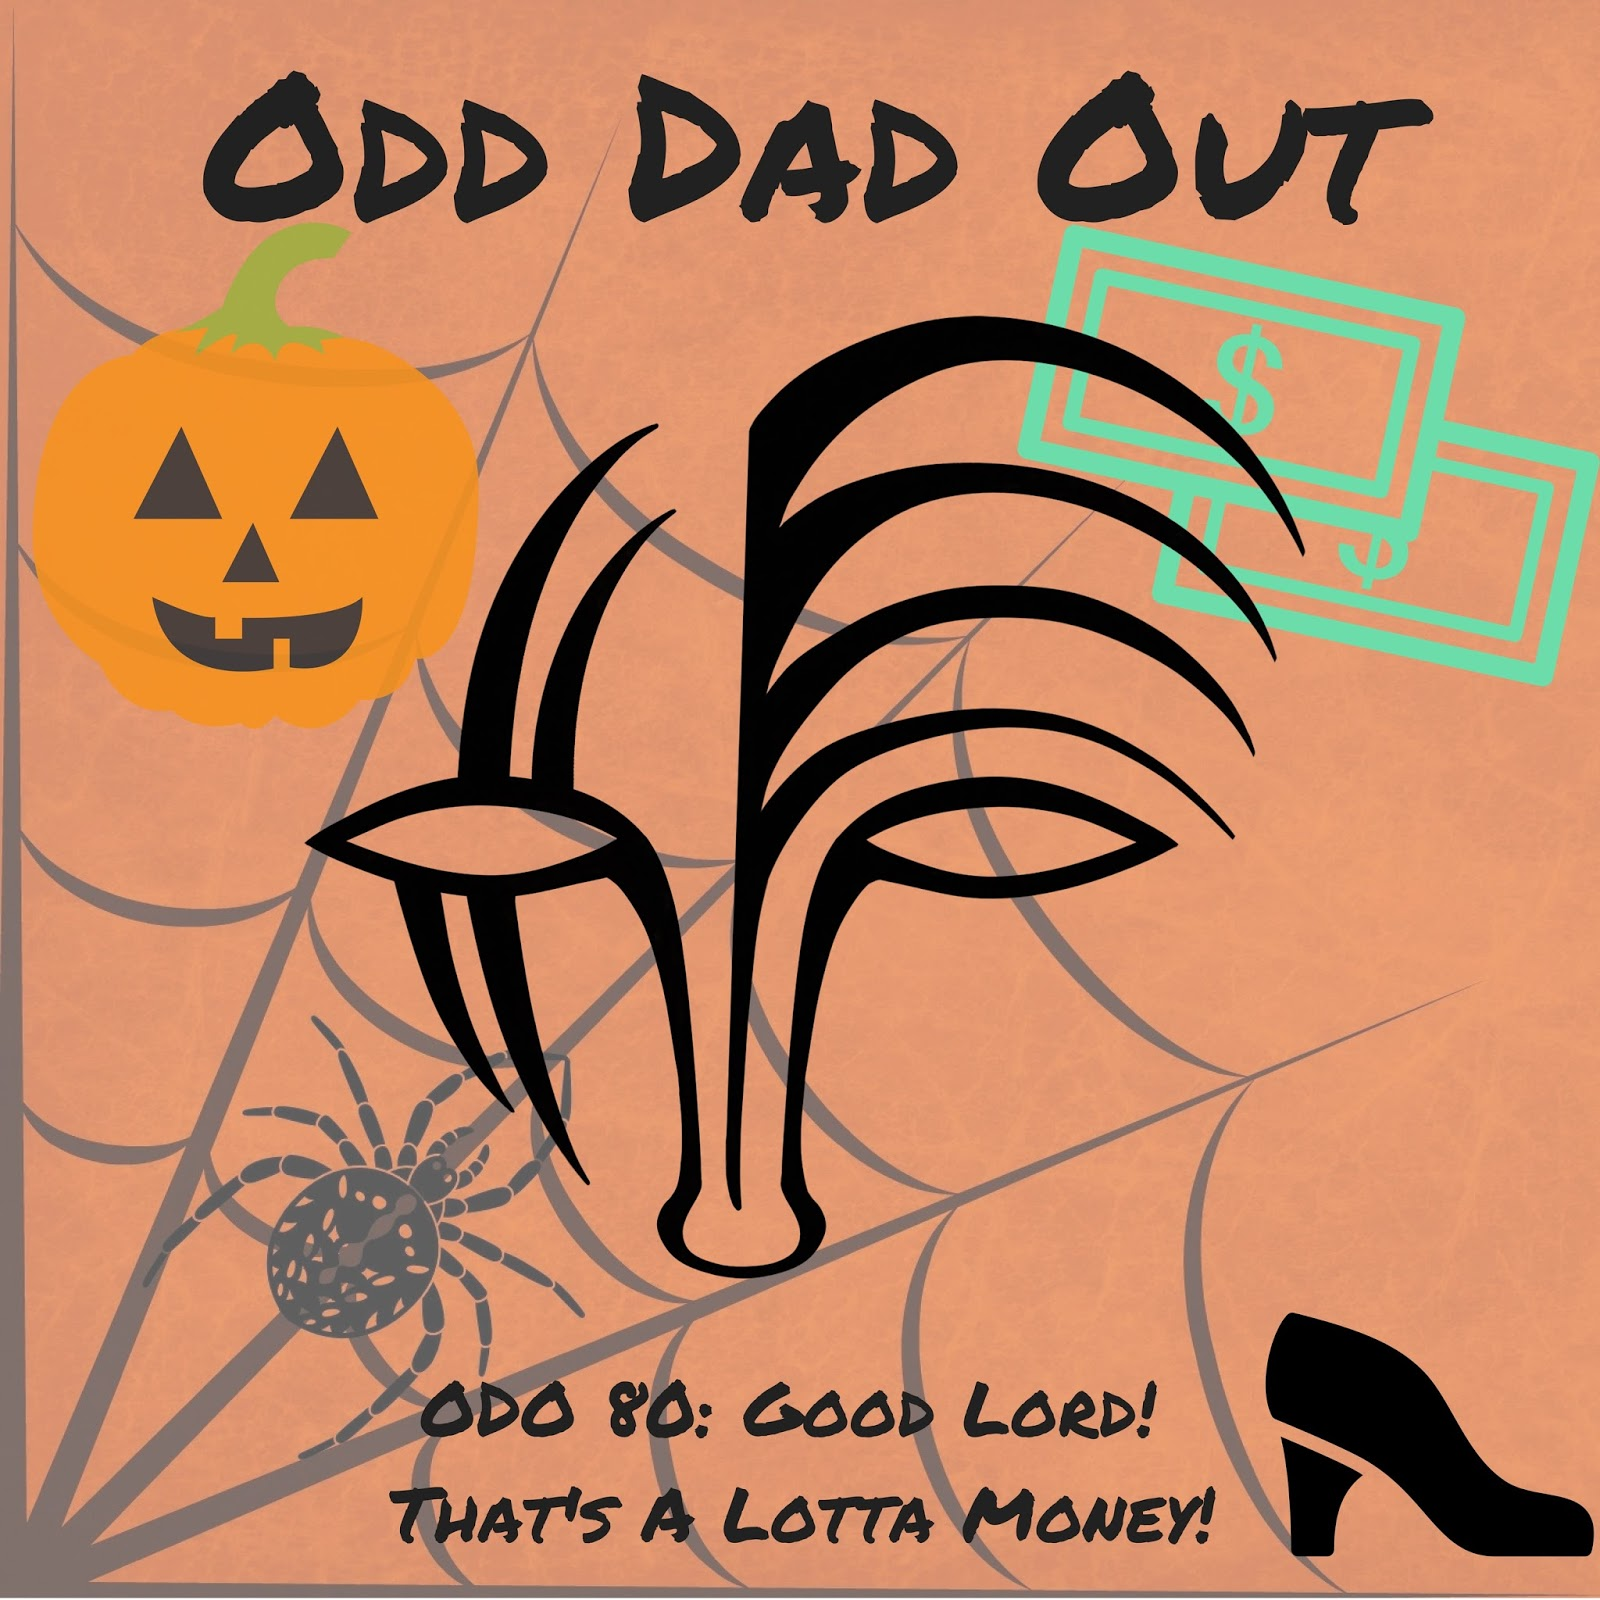 Odo 80 Good Lord Thats A Lotta Money Odd Dad Out Podcast